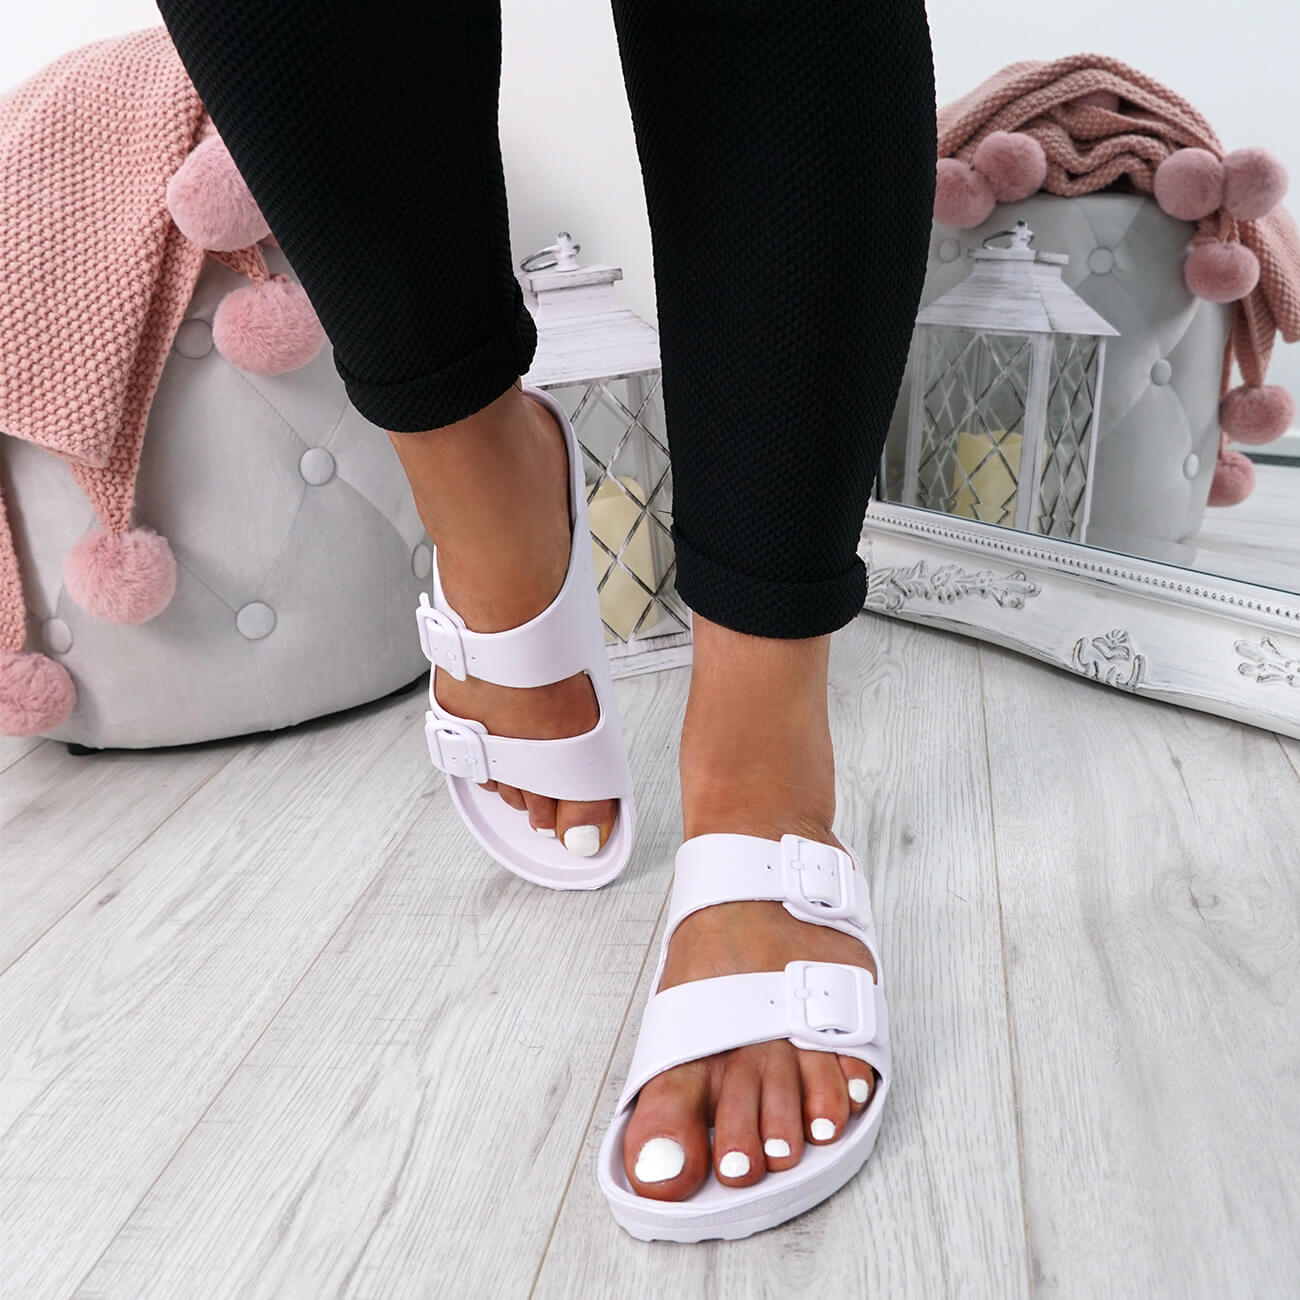 WOMENS-LADIES-SLIP-ON-DOUBLE-BUCKLE-FLAT-SANDALS-SUMMER-SHOES-SIZE-UK thumbnail 14